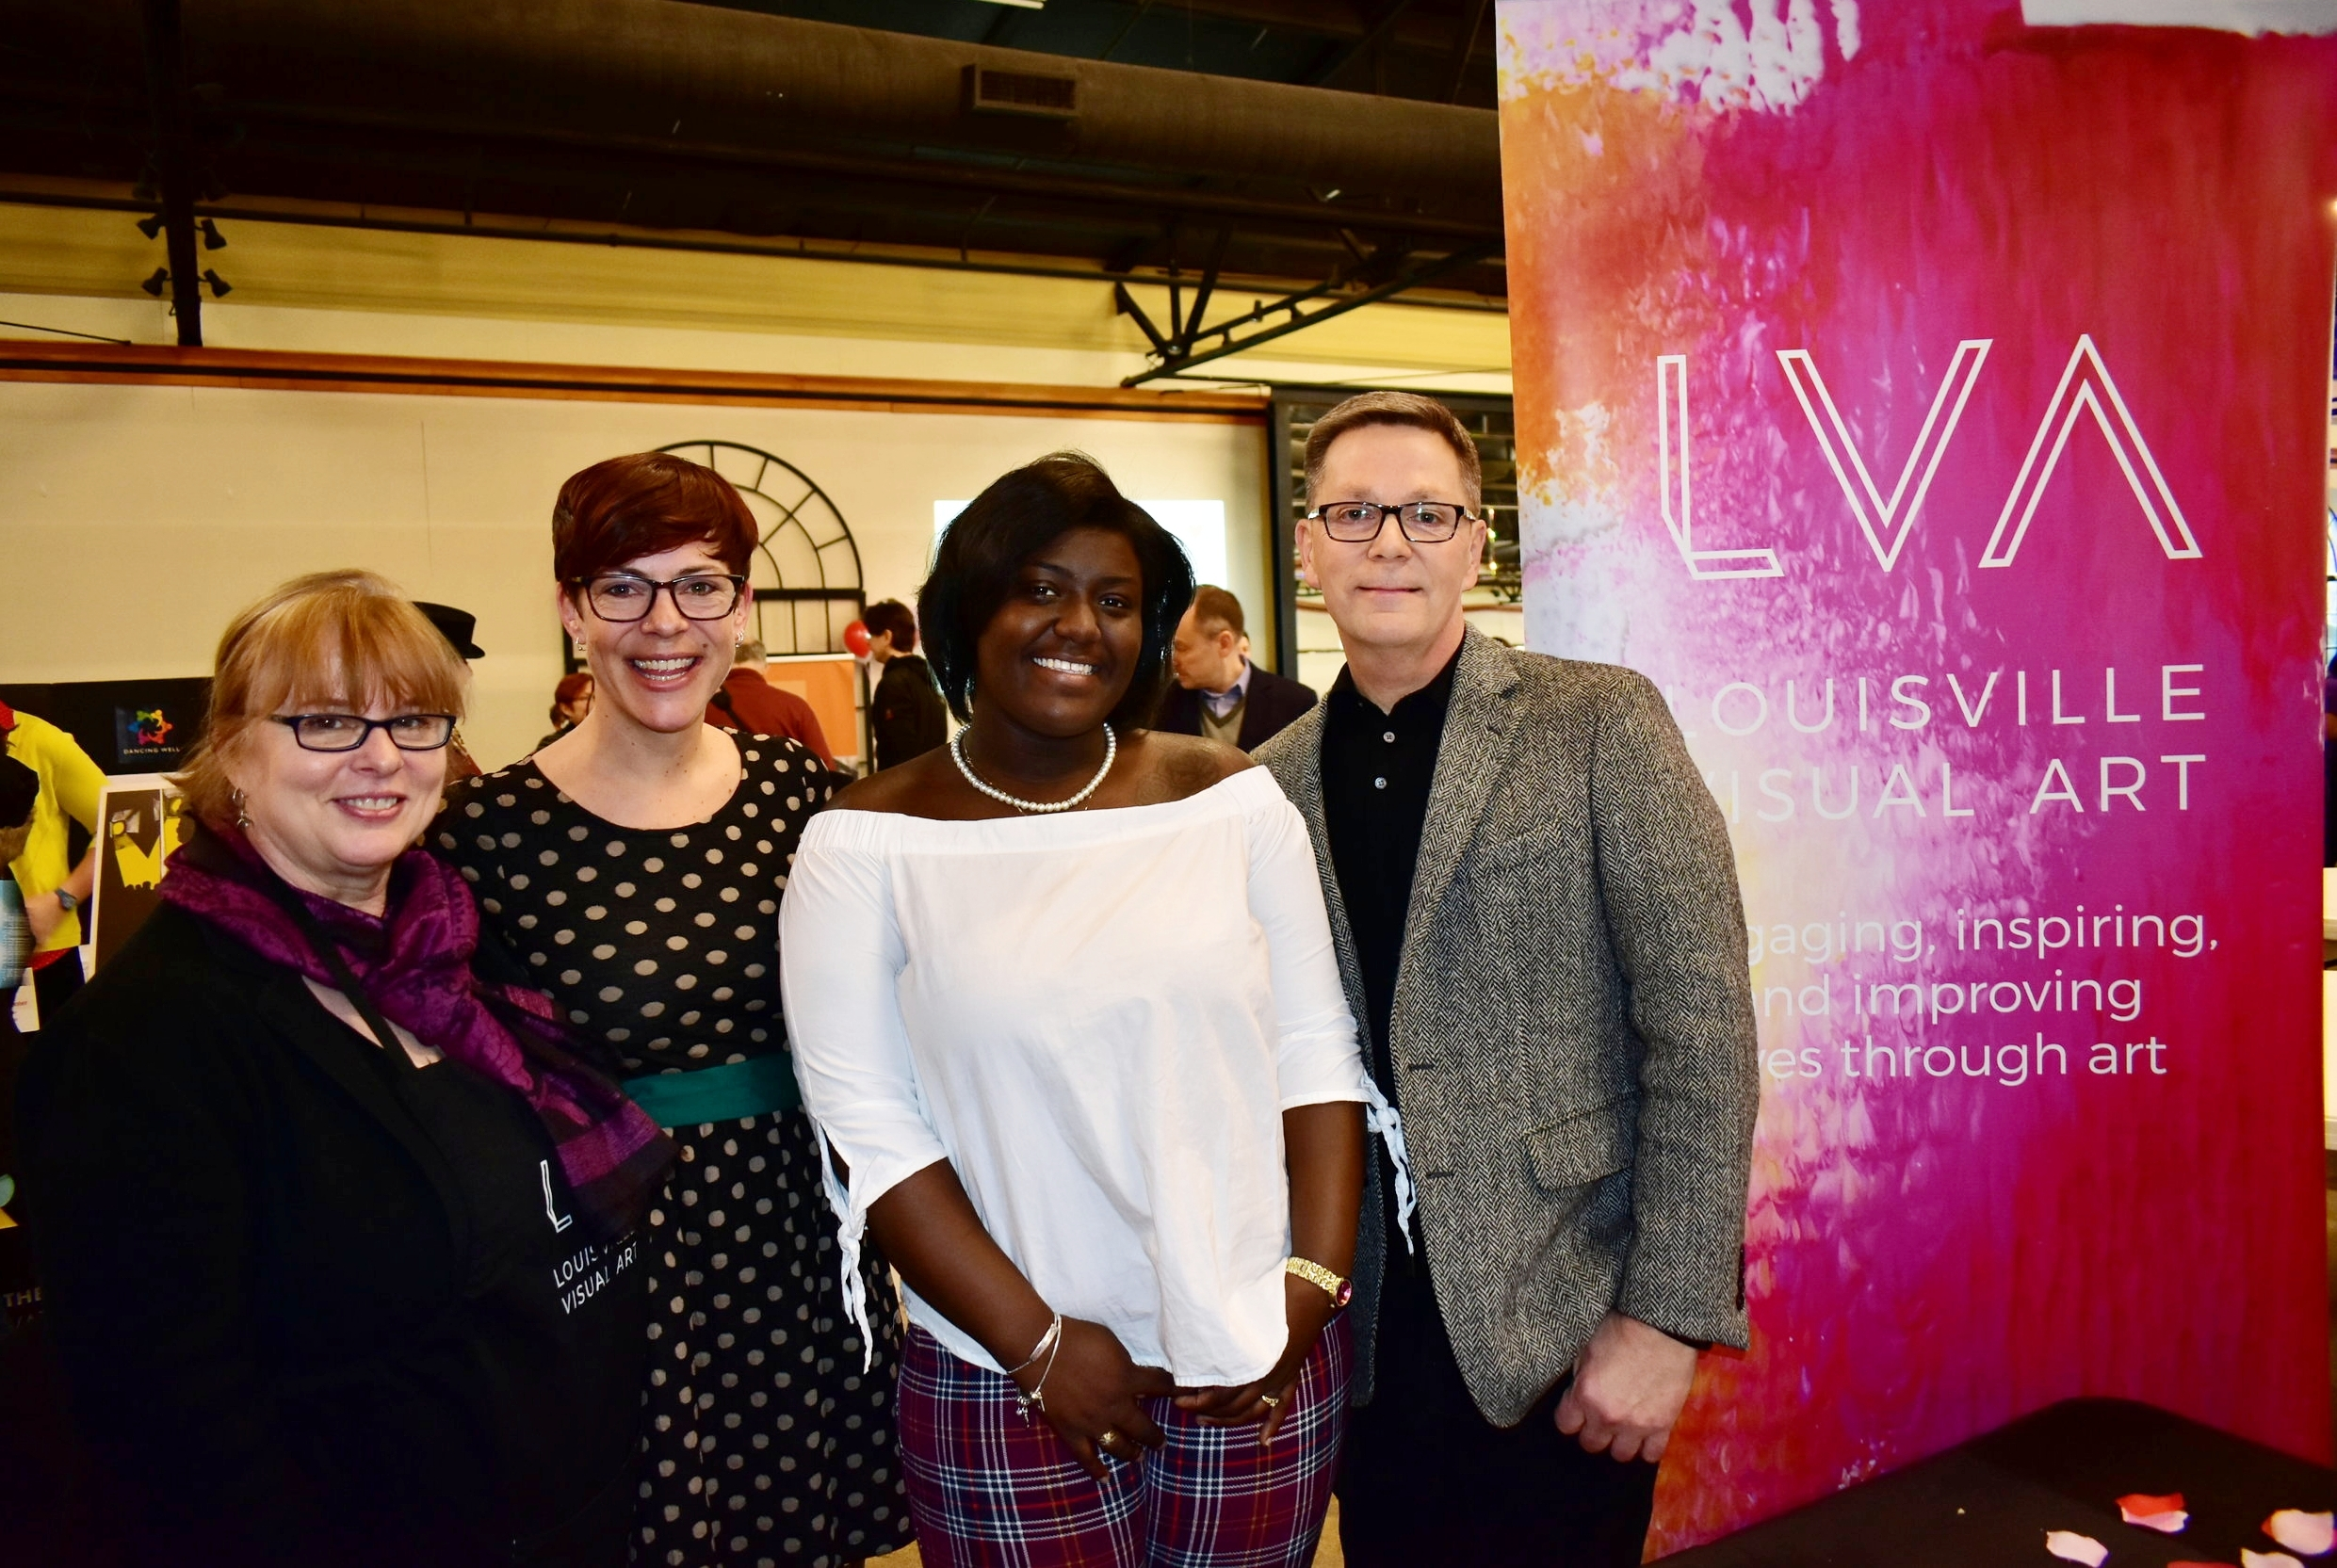 LVA's Annette Cable, Ehren Reed and Lindy Casebier with student Donielle Pankey